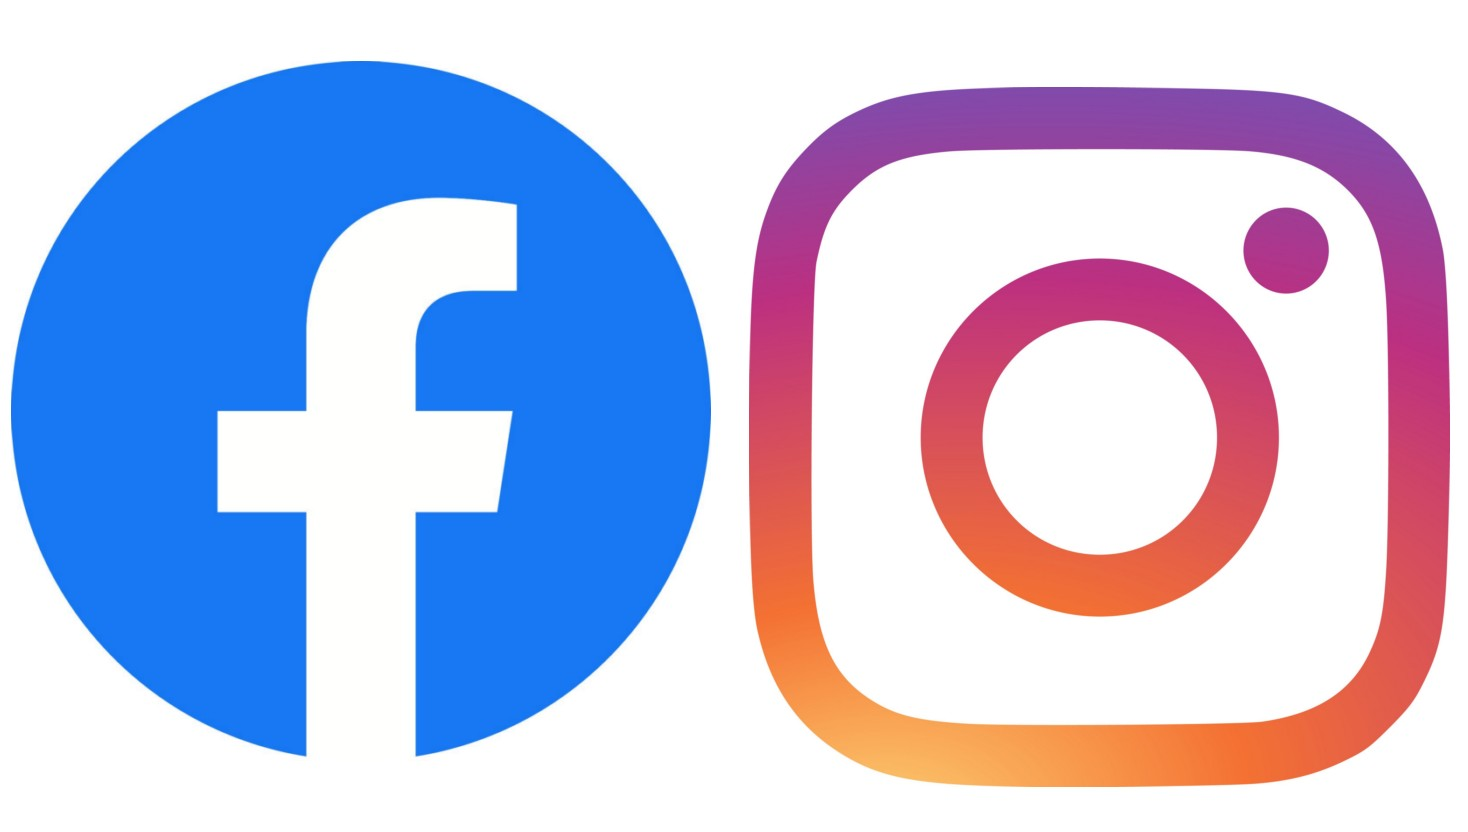 Facebook, Instagram face another global outage in less than a month